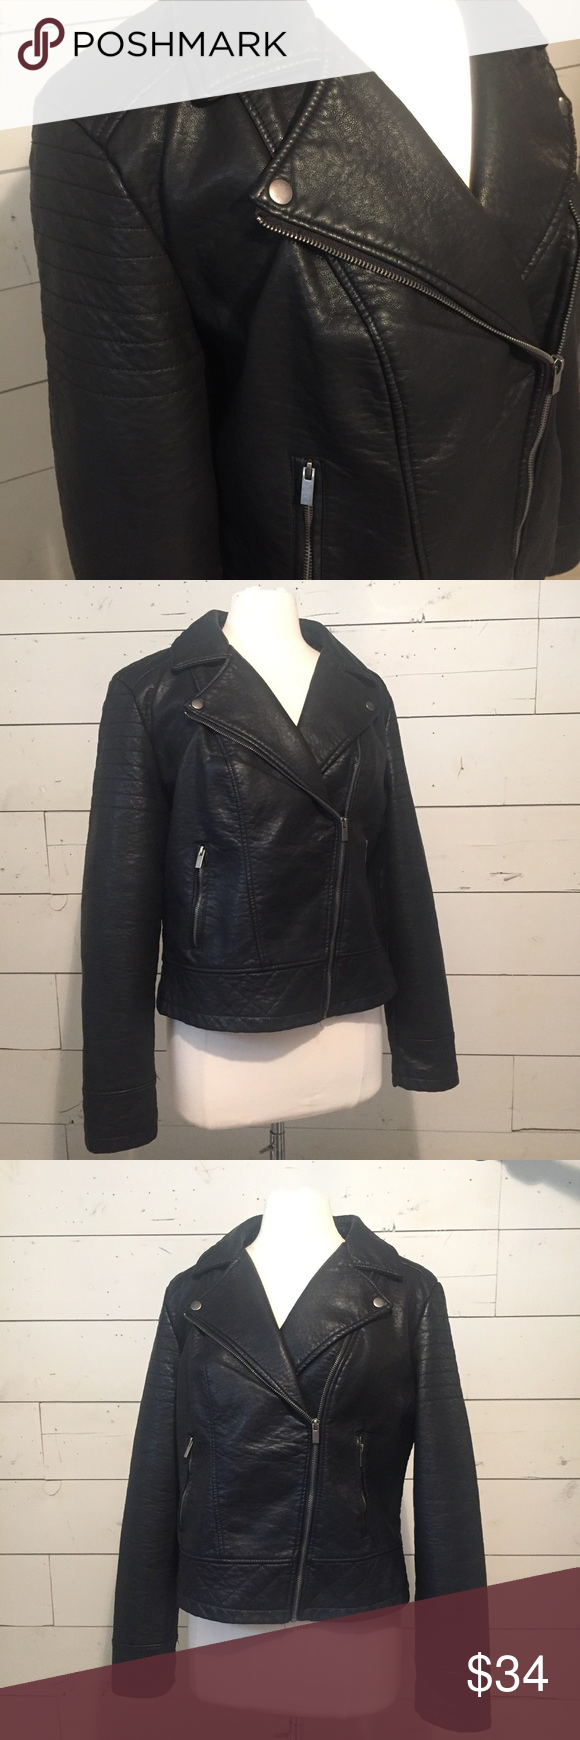 Target Faux Leather Motorcycle Jacket Faux Leather Motorcycle Jacket Jackets Clothes Design [ png ]